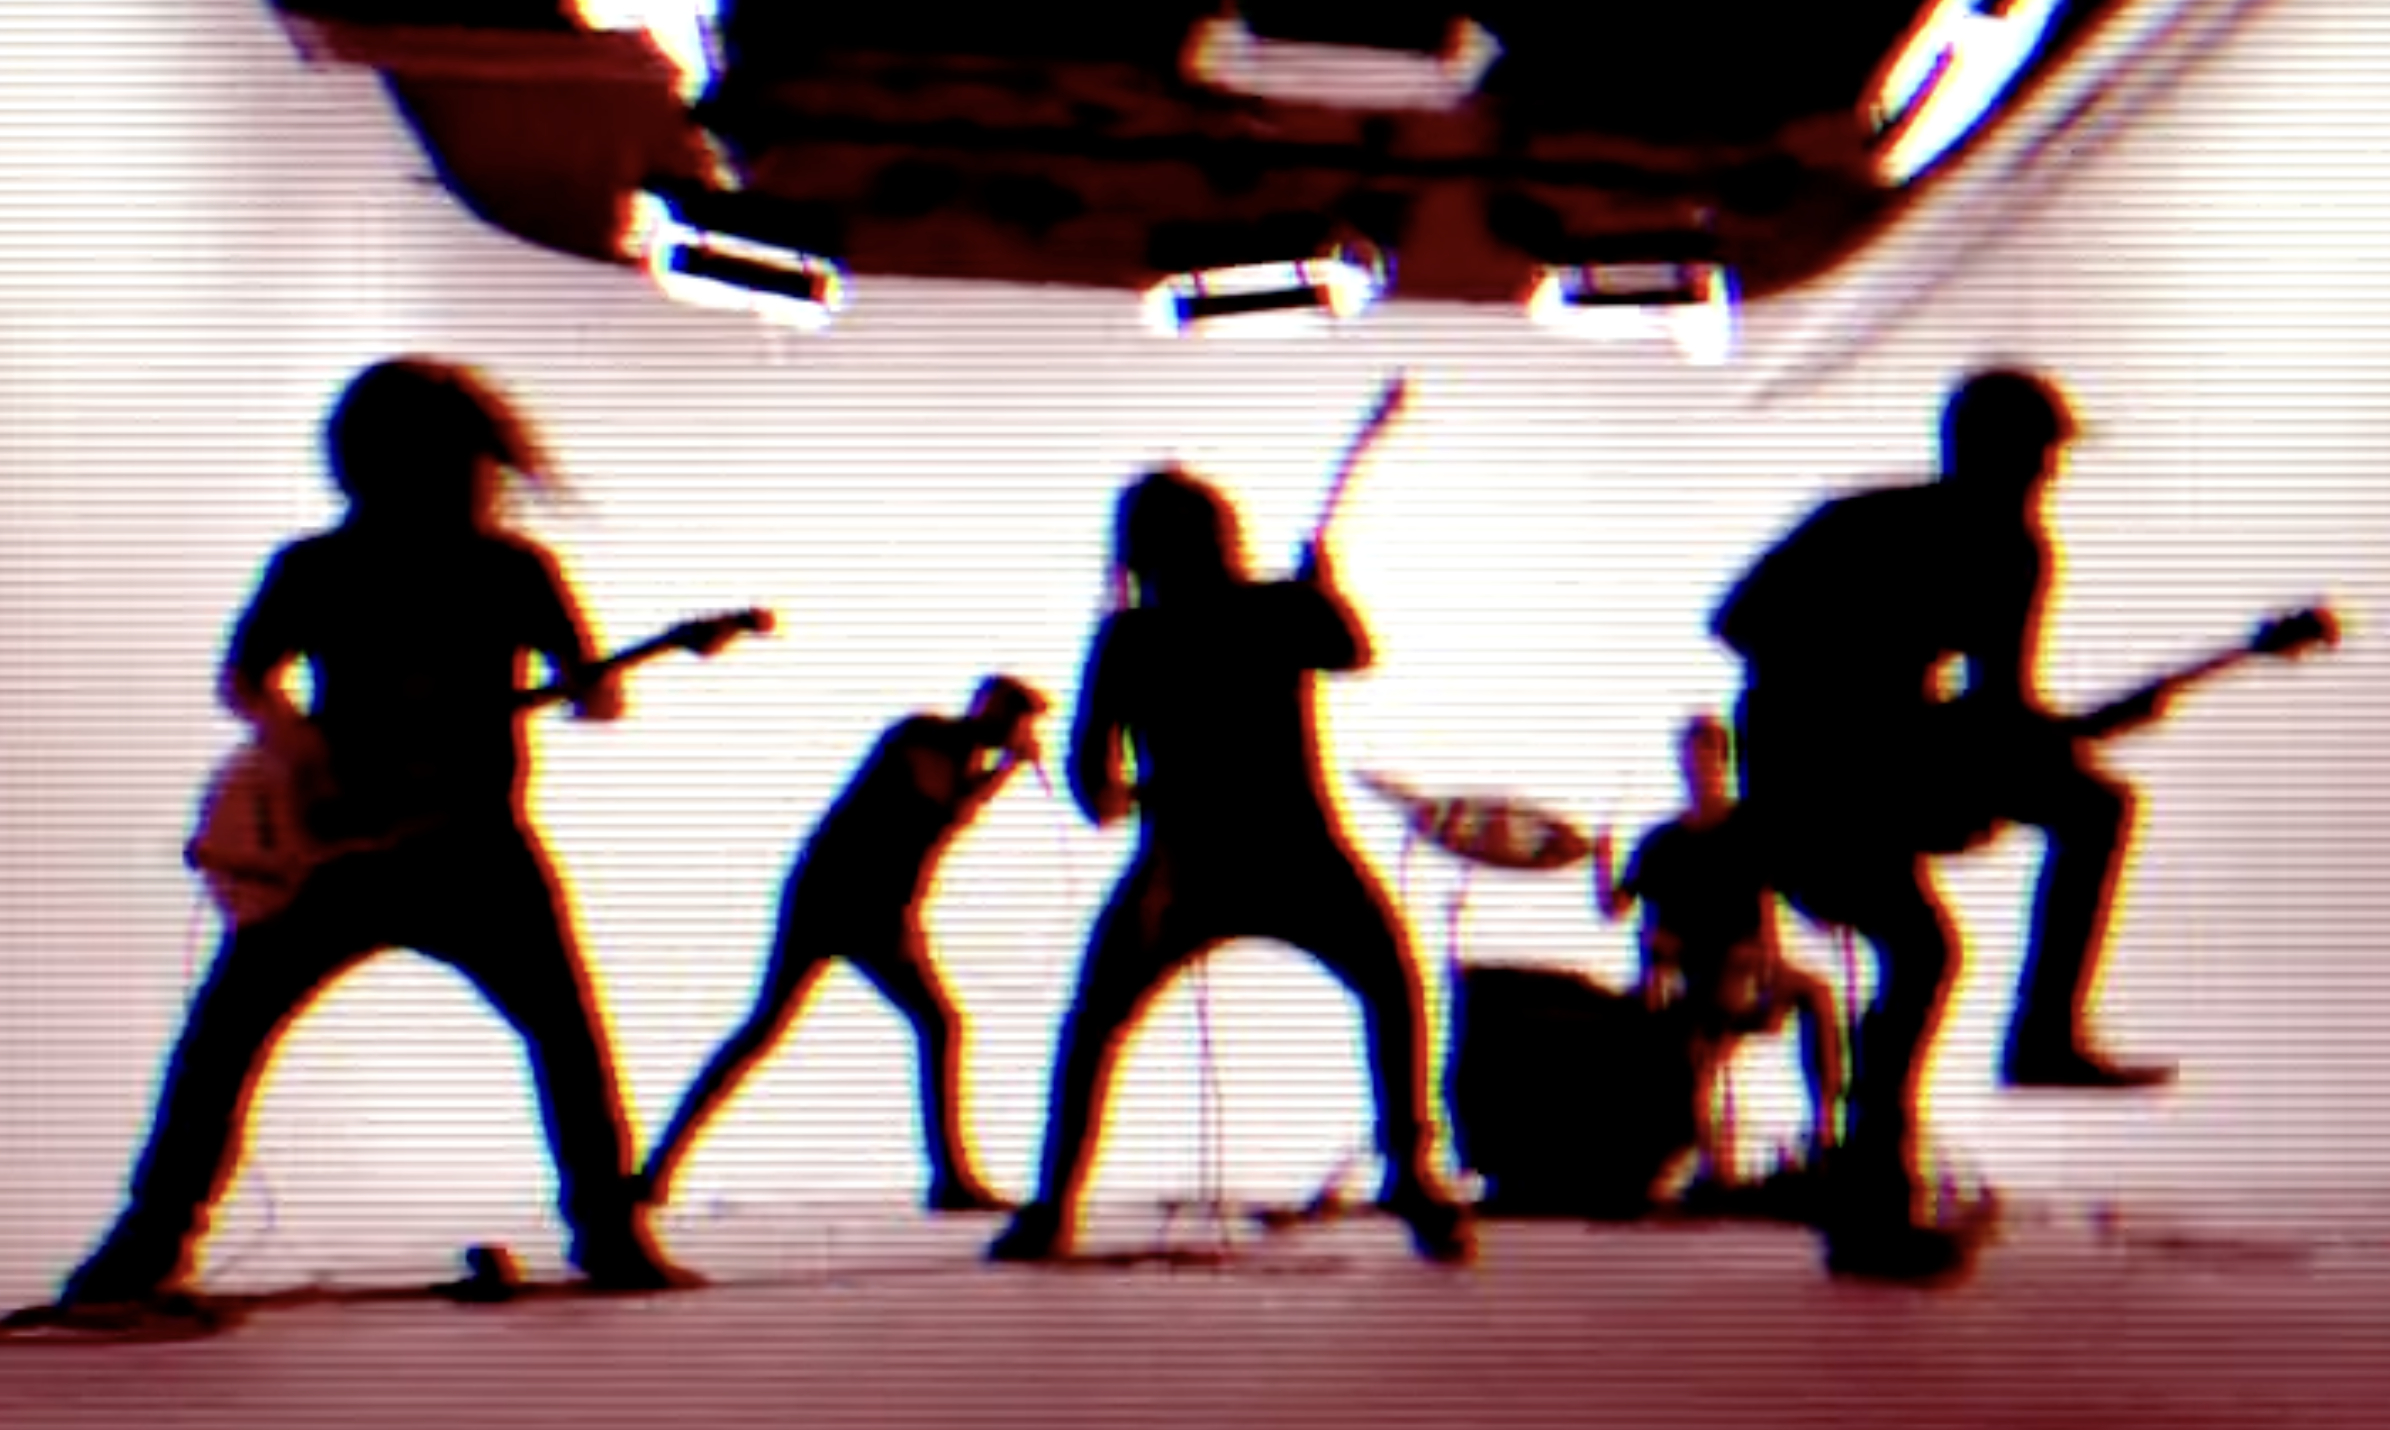 thoughtcrimes Have Released A Dizzyingly Striking Video For 'Wedlock Waltz'